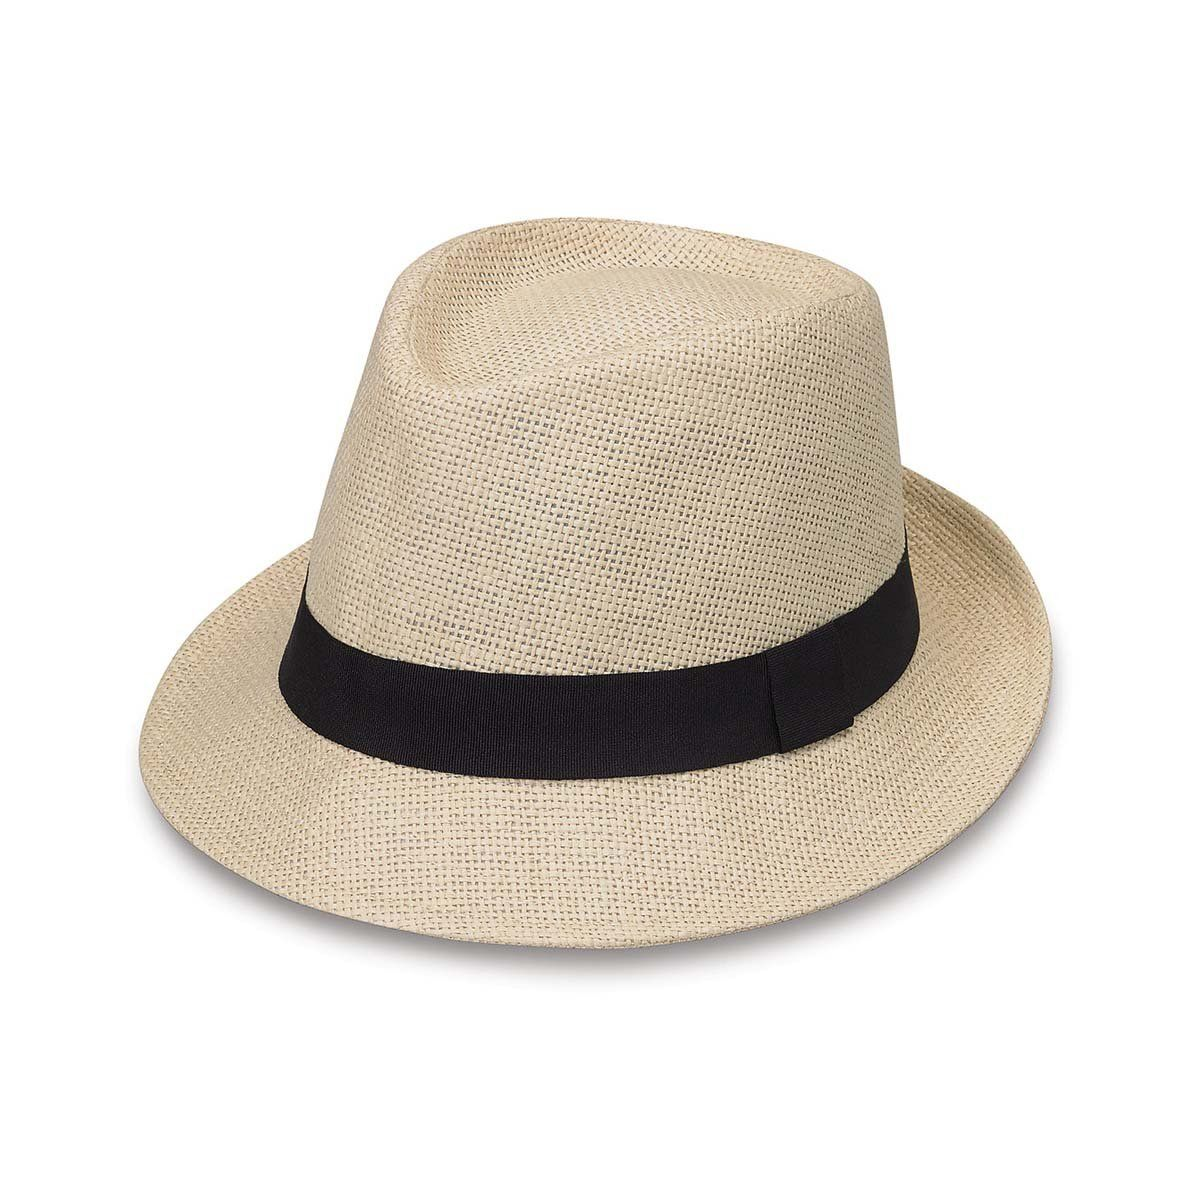 Sun Protection Hat By Day Fun And Fashionable For The Evening Lightweight 2 Brim Adjustable Fit 100 Pape Sun Protection Hat Womens Fedora Hats For Women